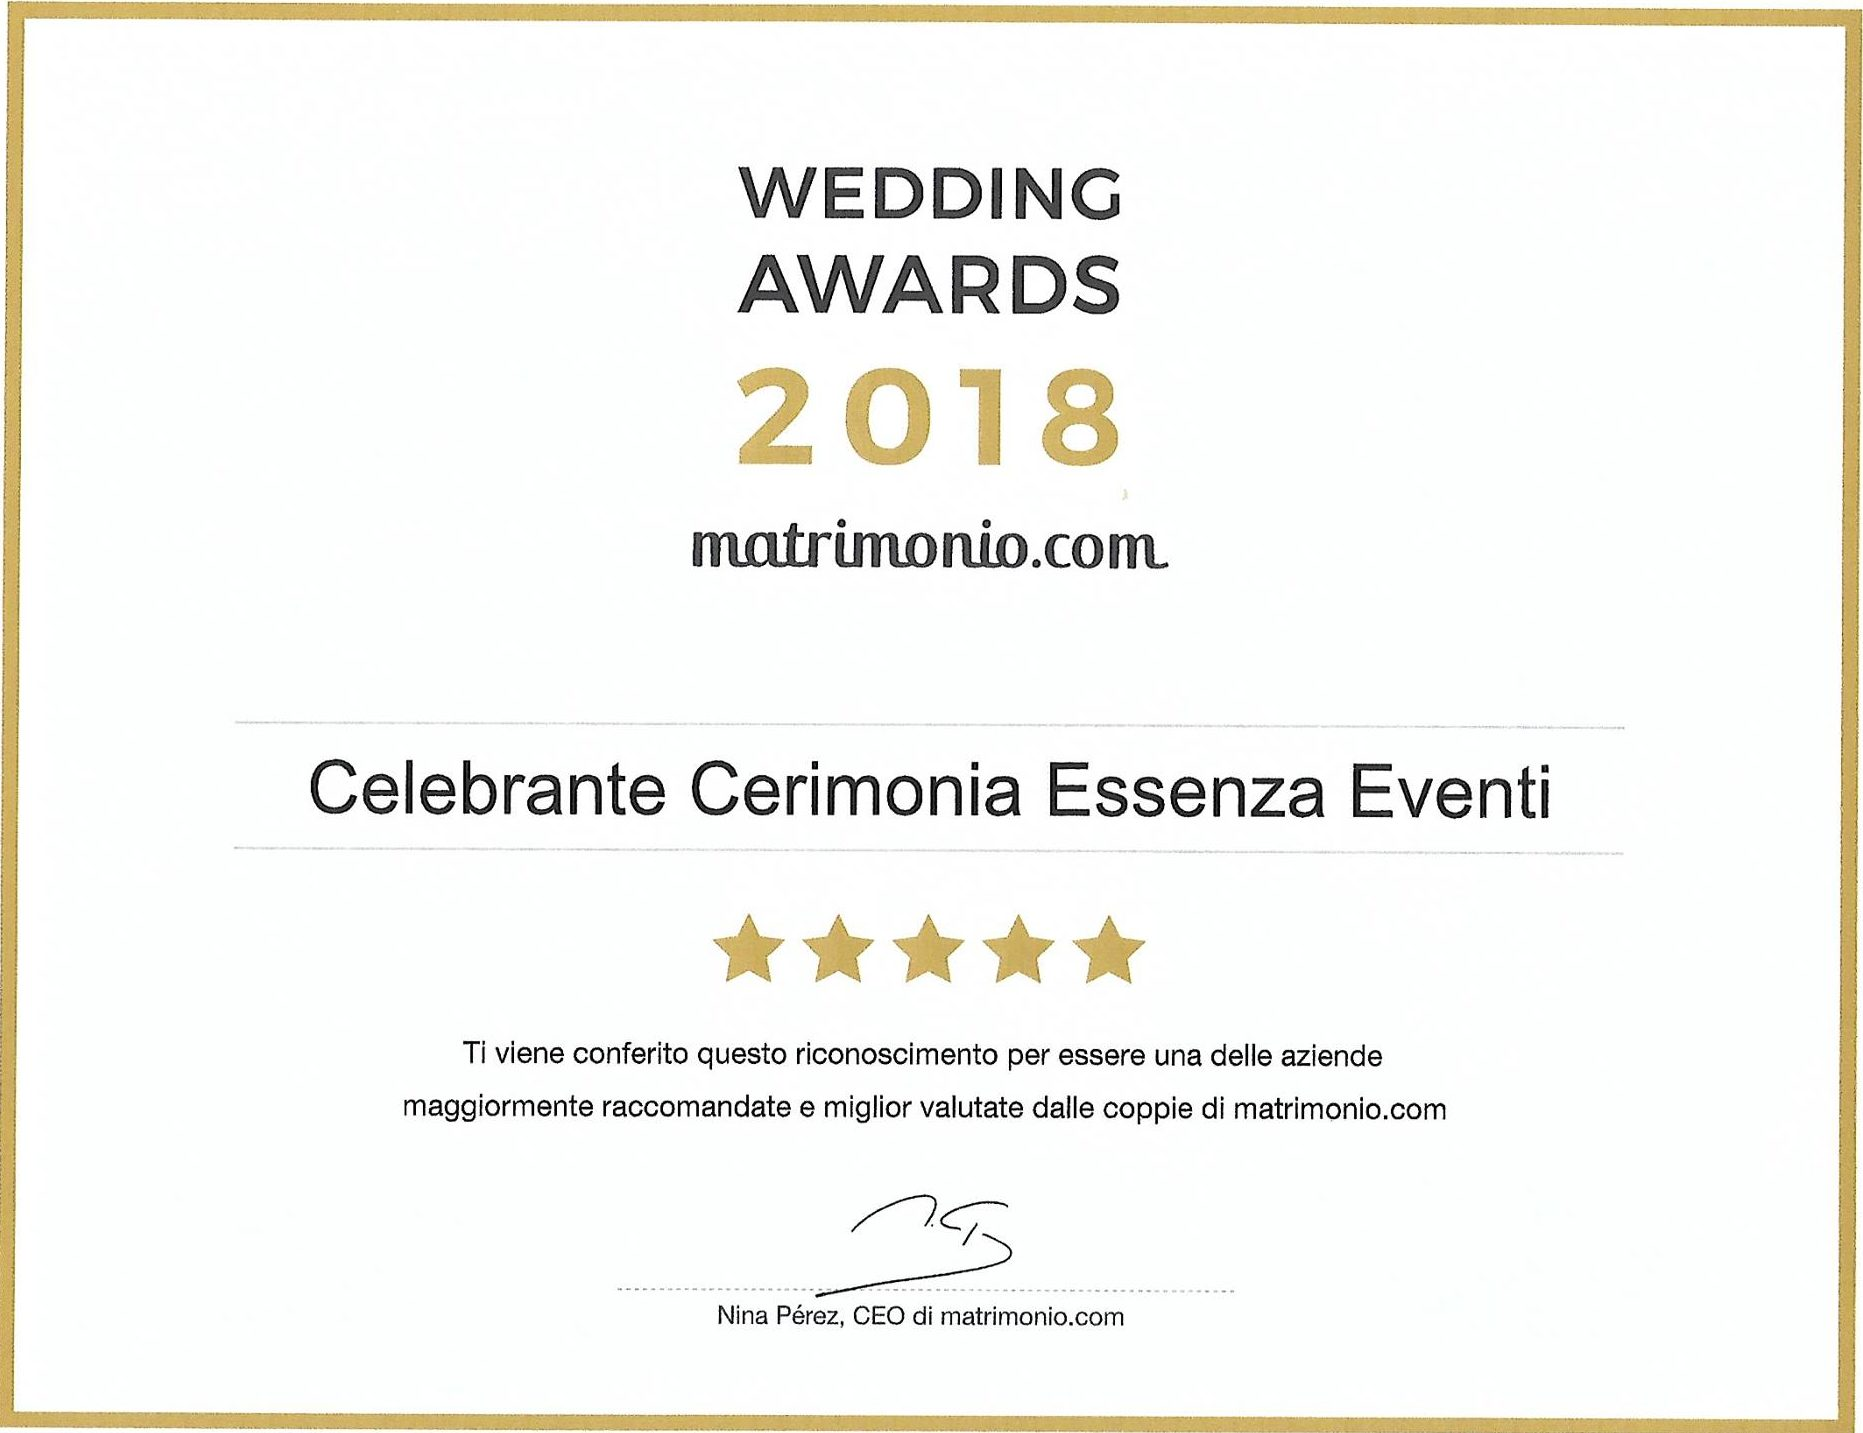 Matrimonio.com – Wedding Award 2018 Celebrante